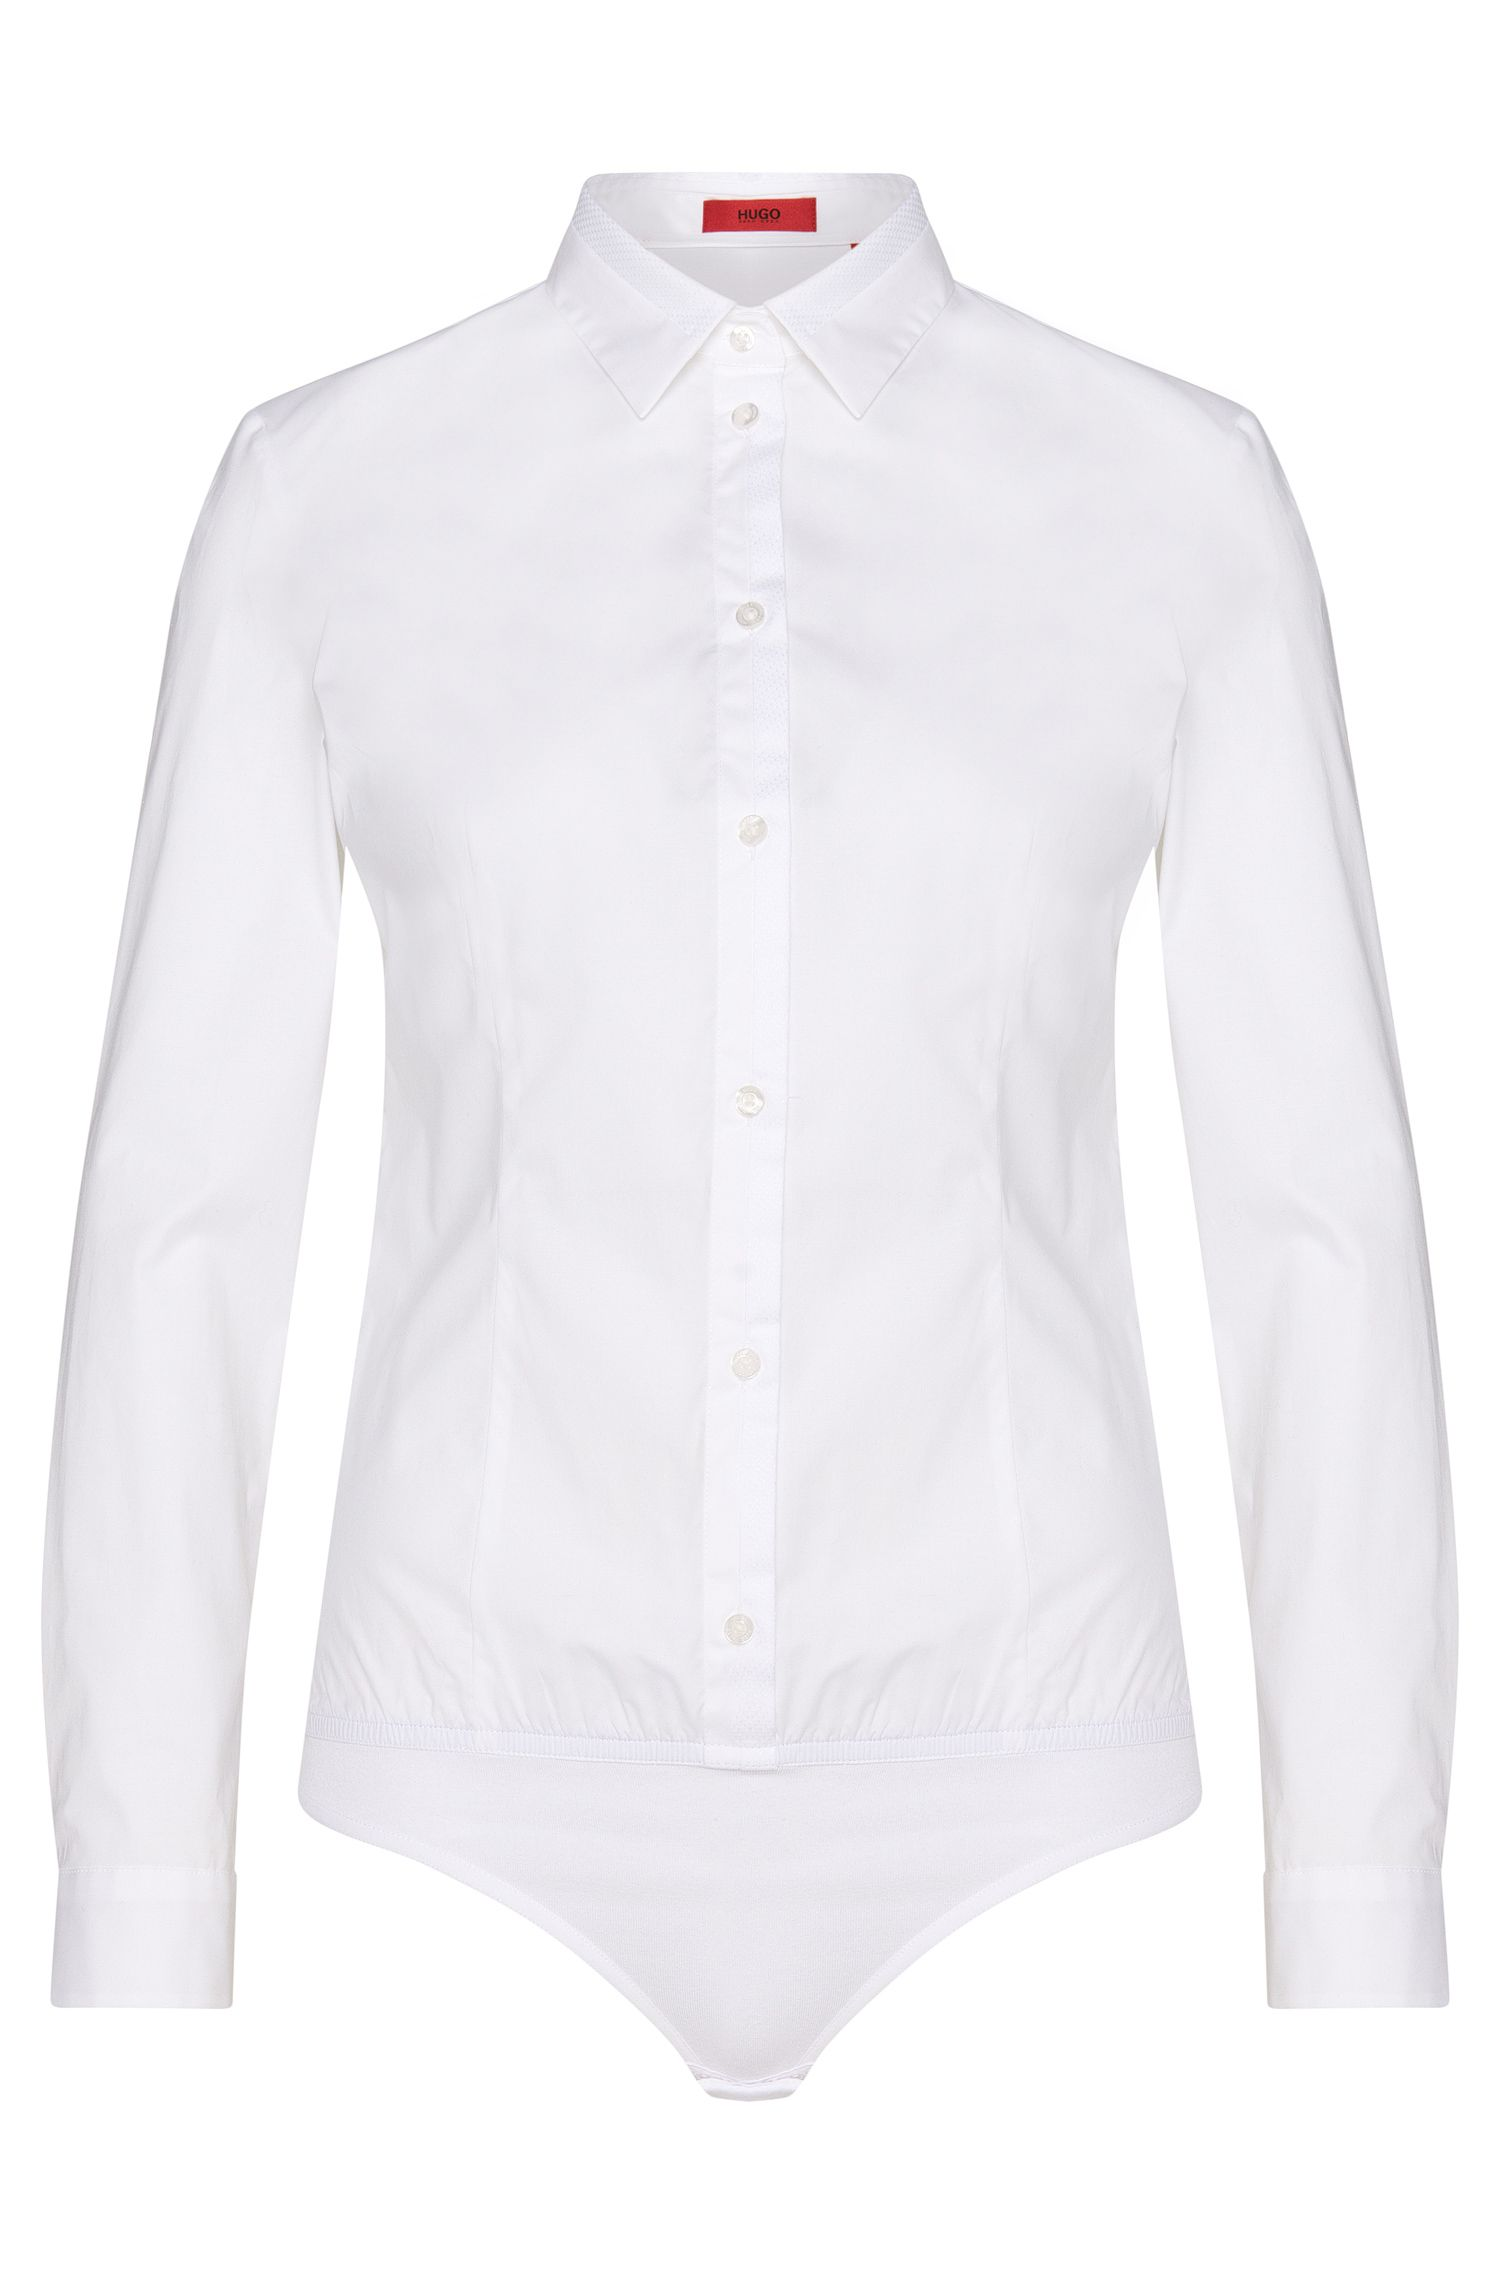 Stringbody blouse in stretch cotton with elastic hem: 'Elyn'